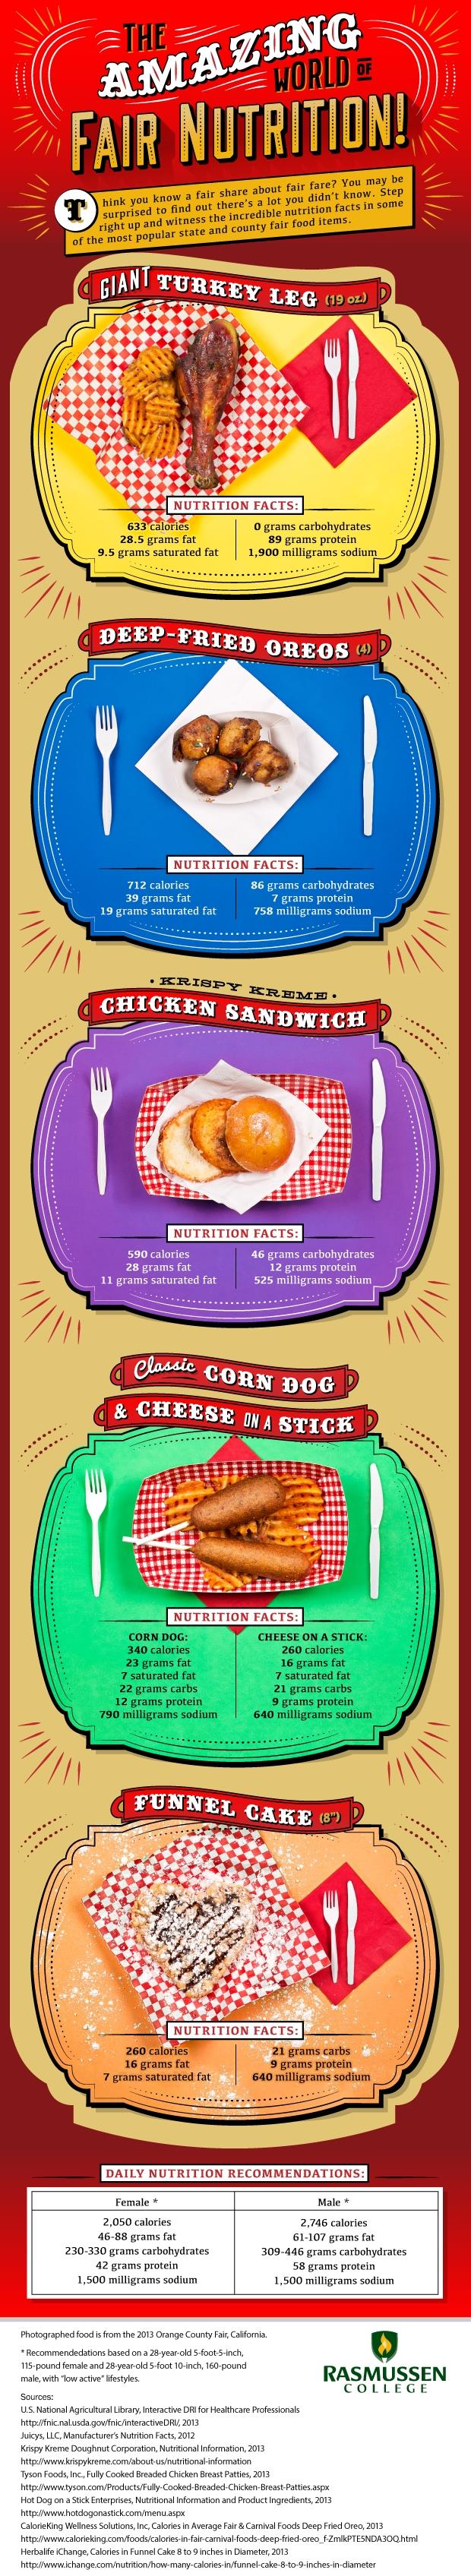 The Amazing World of Fair Nutrition #infographic